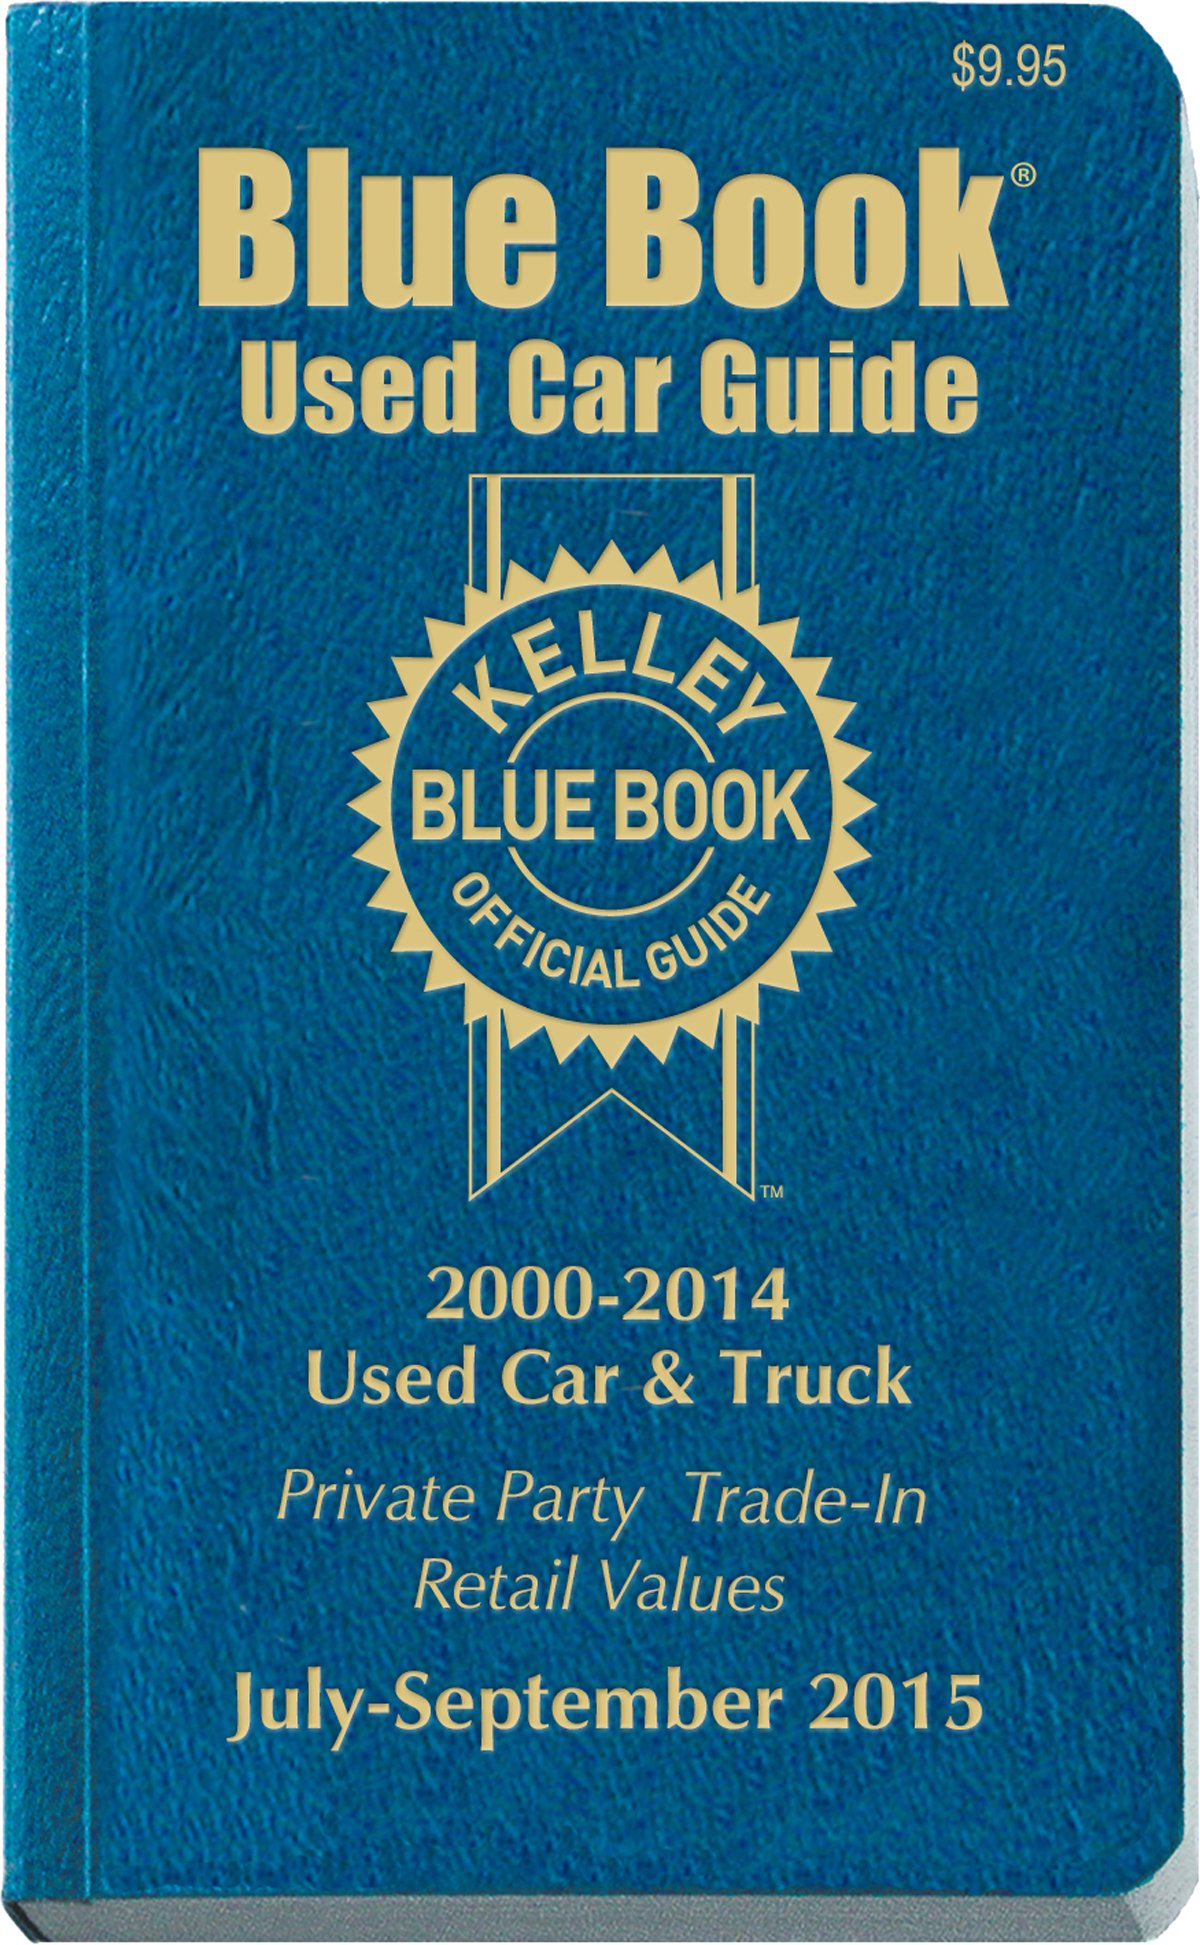 kelley blue book used car guide consumer edition july september